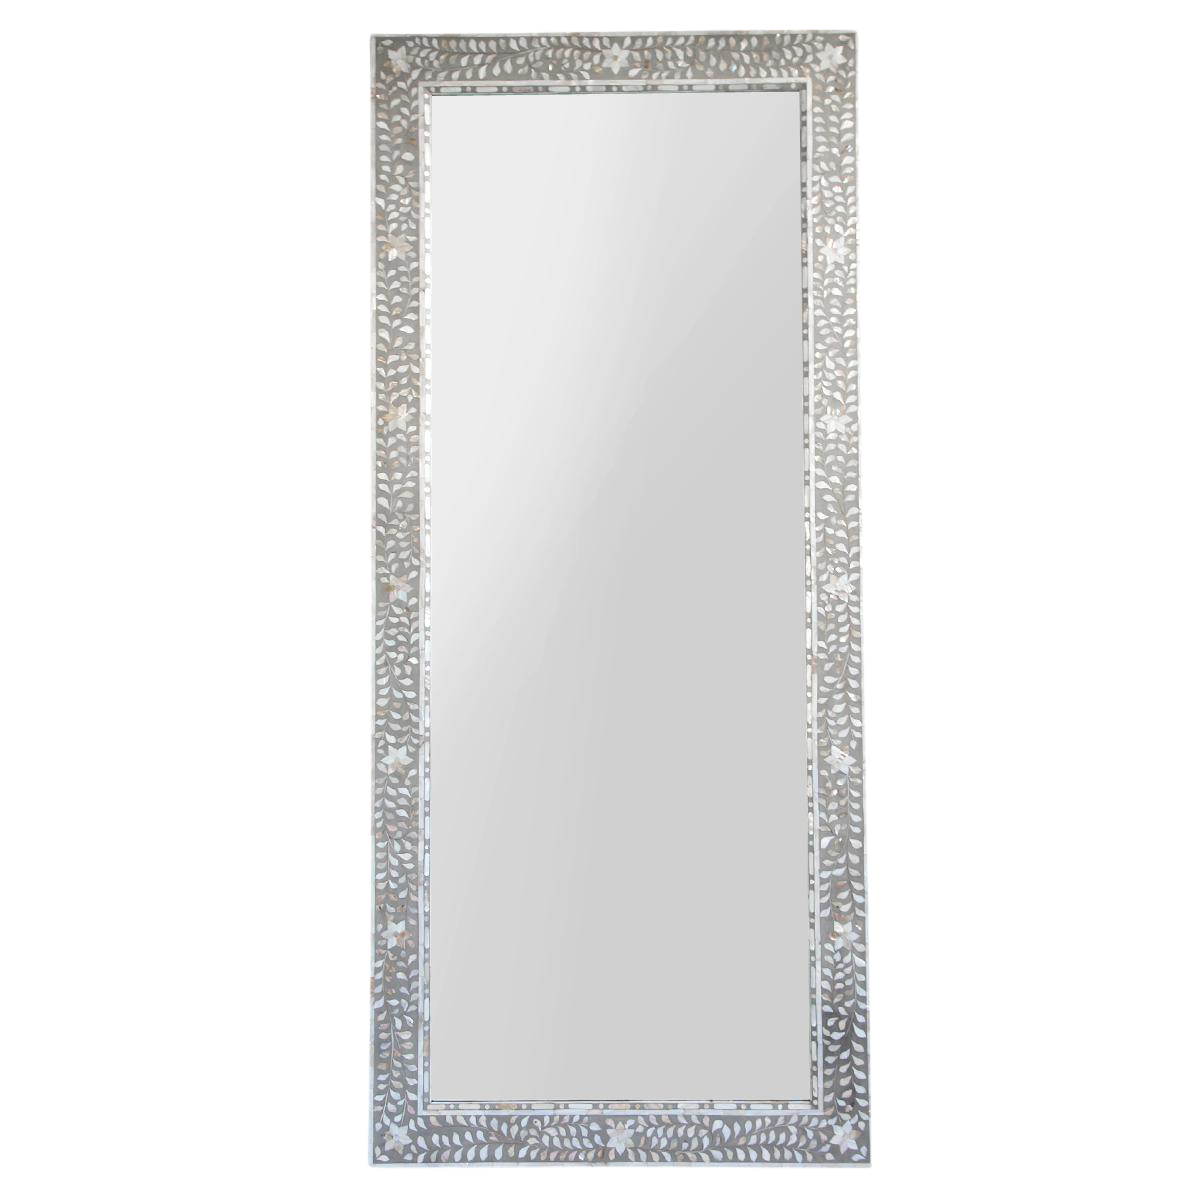 Inlaid Mother Of Pearl Full Length Mirror On Chairish Com